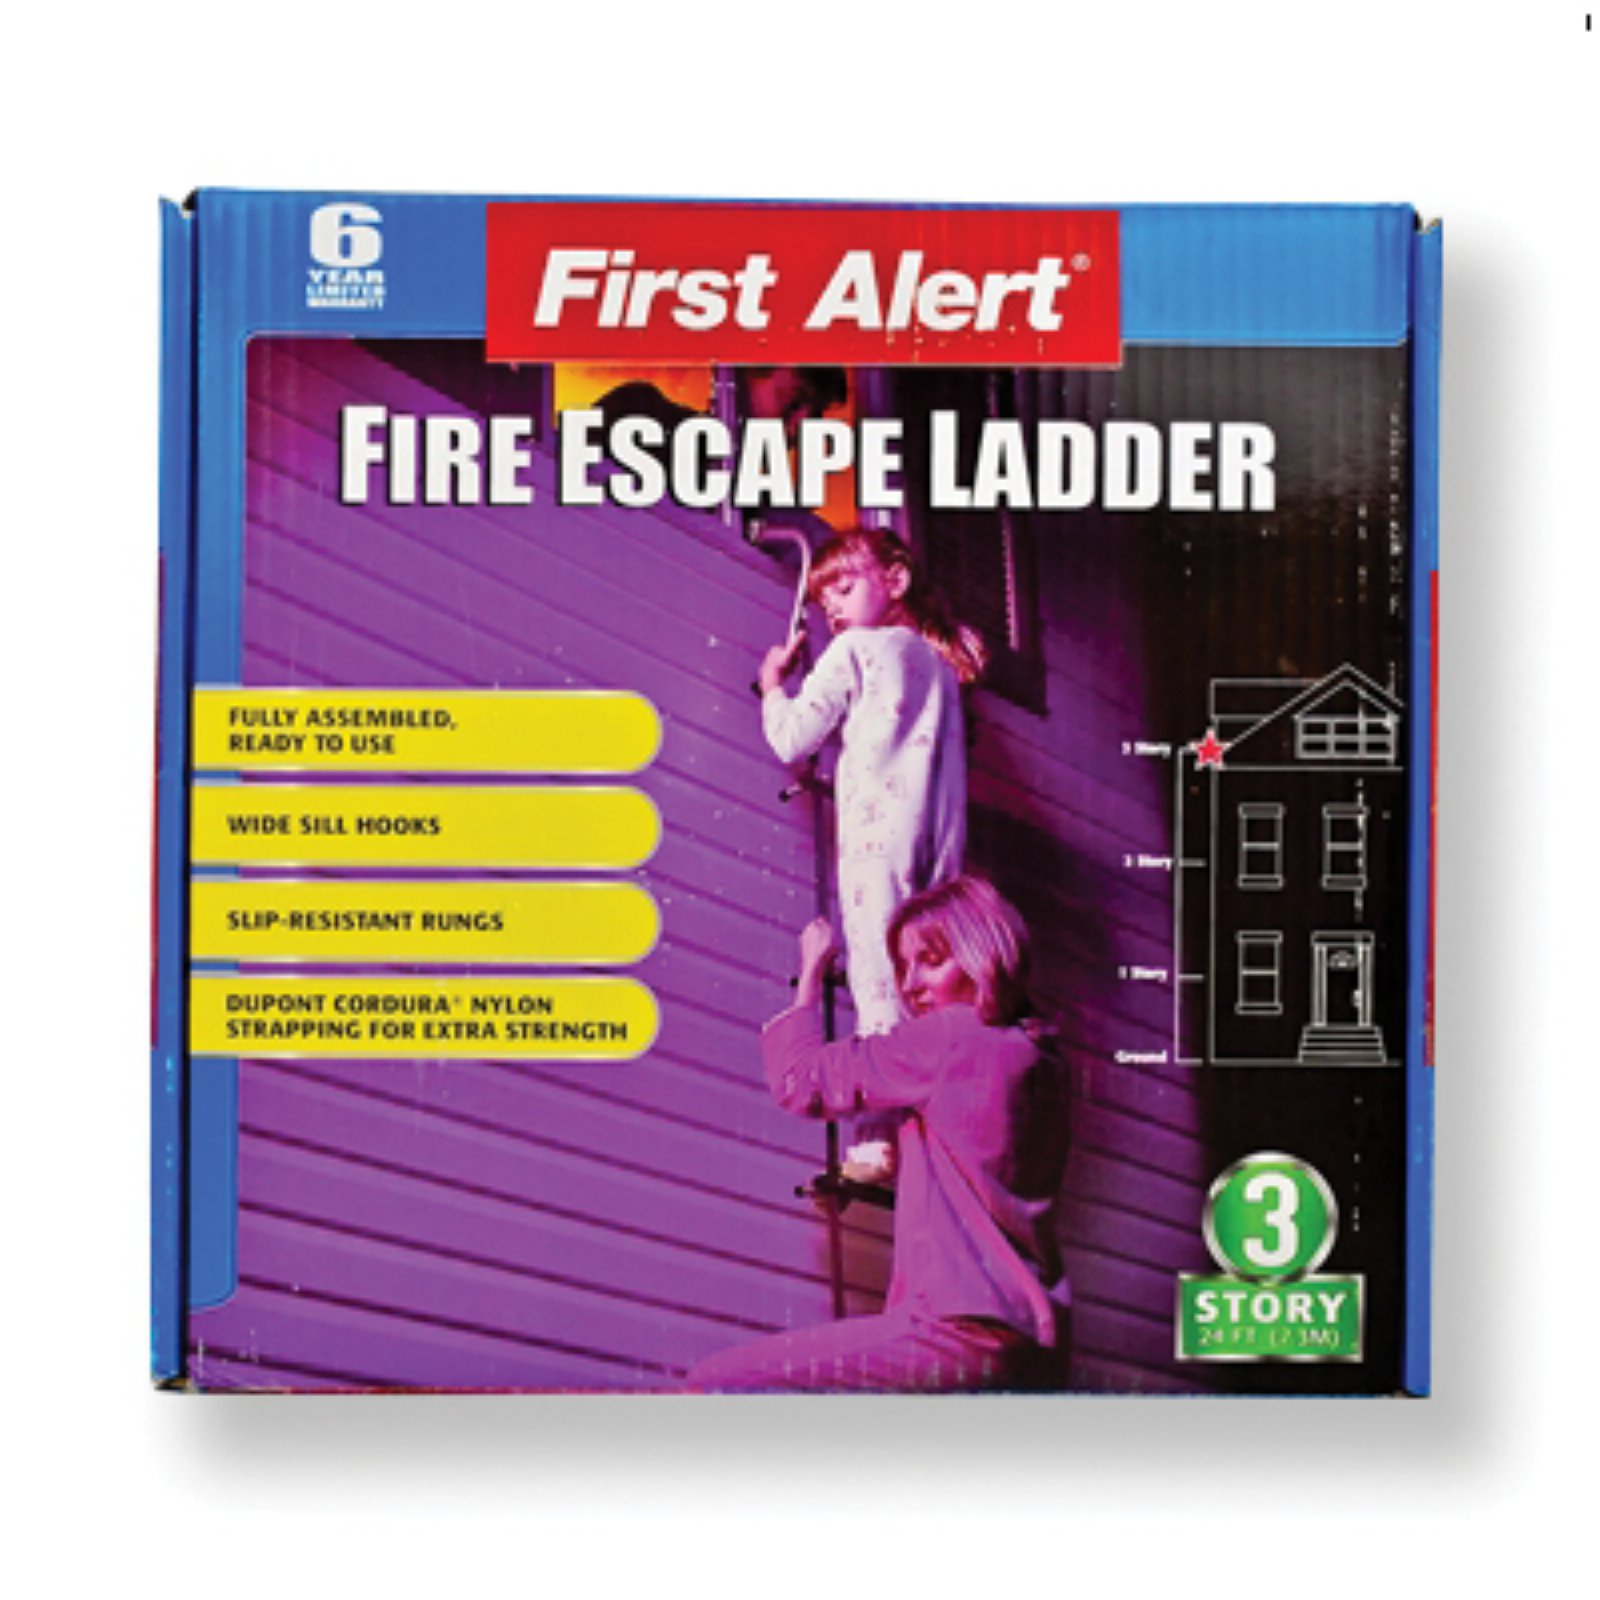 First Alert 25 ft. Fire Escape Ladder by Mayday